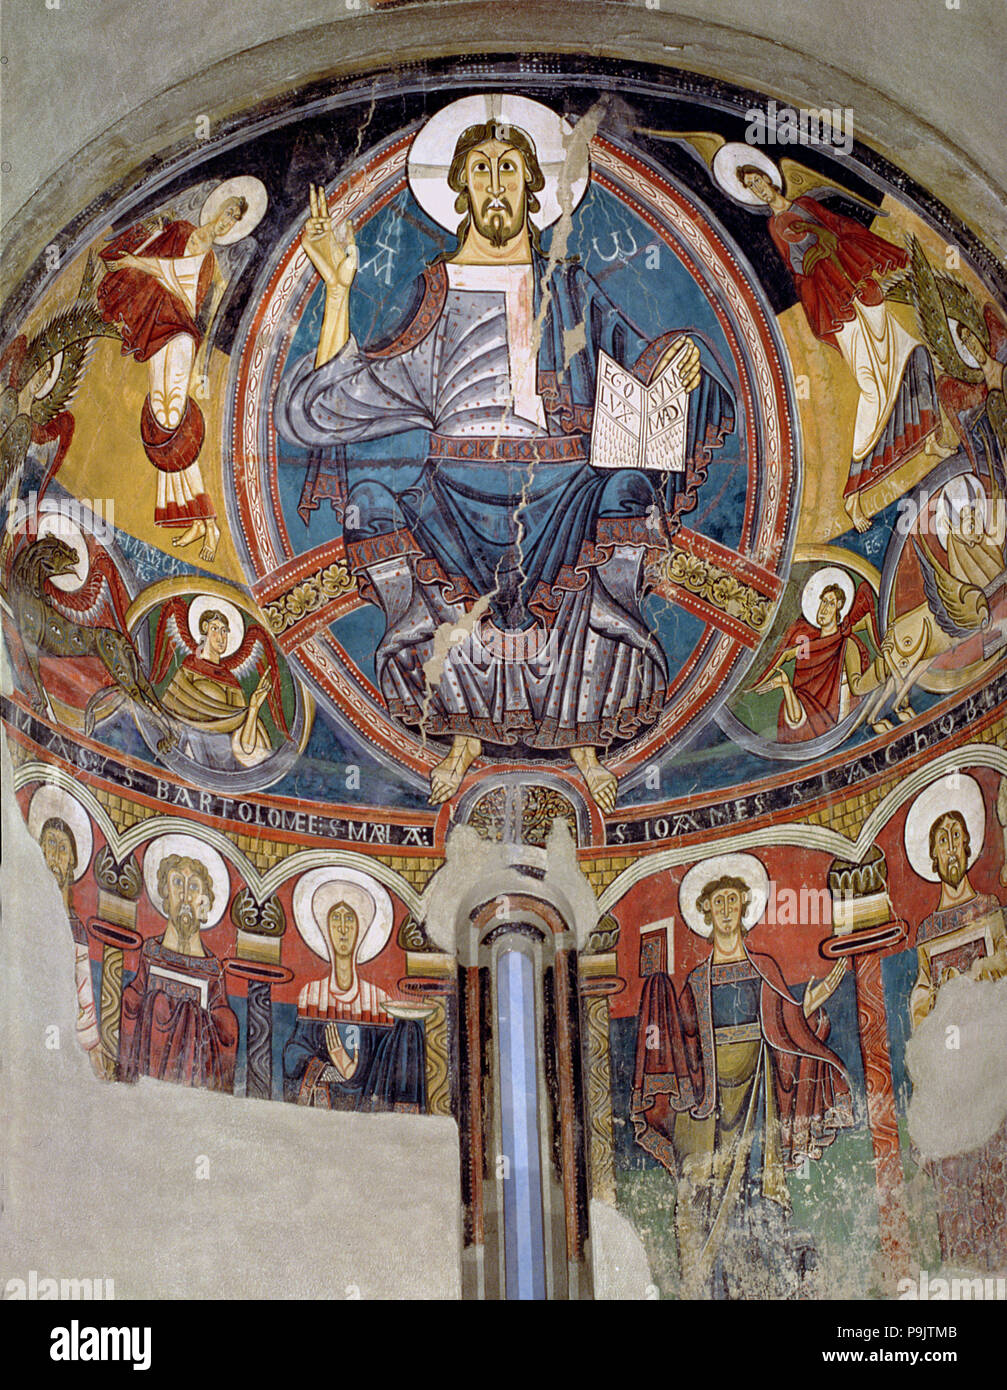 Pantocrator in the apse of the church of Sant Climent de Taüll in the Vall de Boi (Boi Valley), Alta Ribagorça. - Stock Image